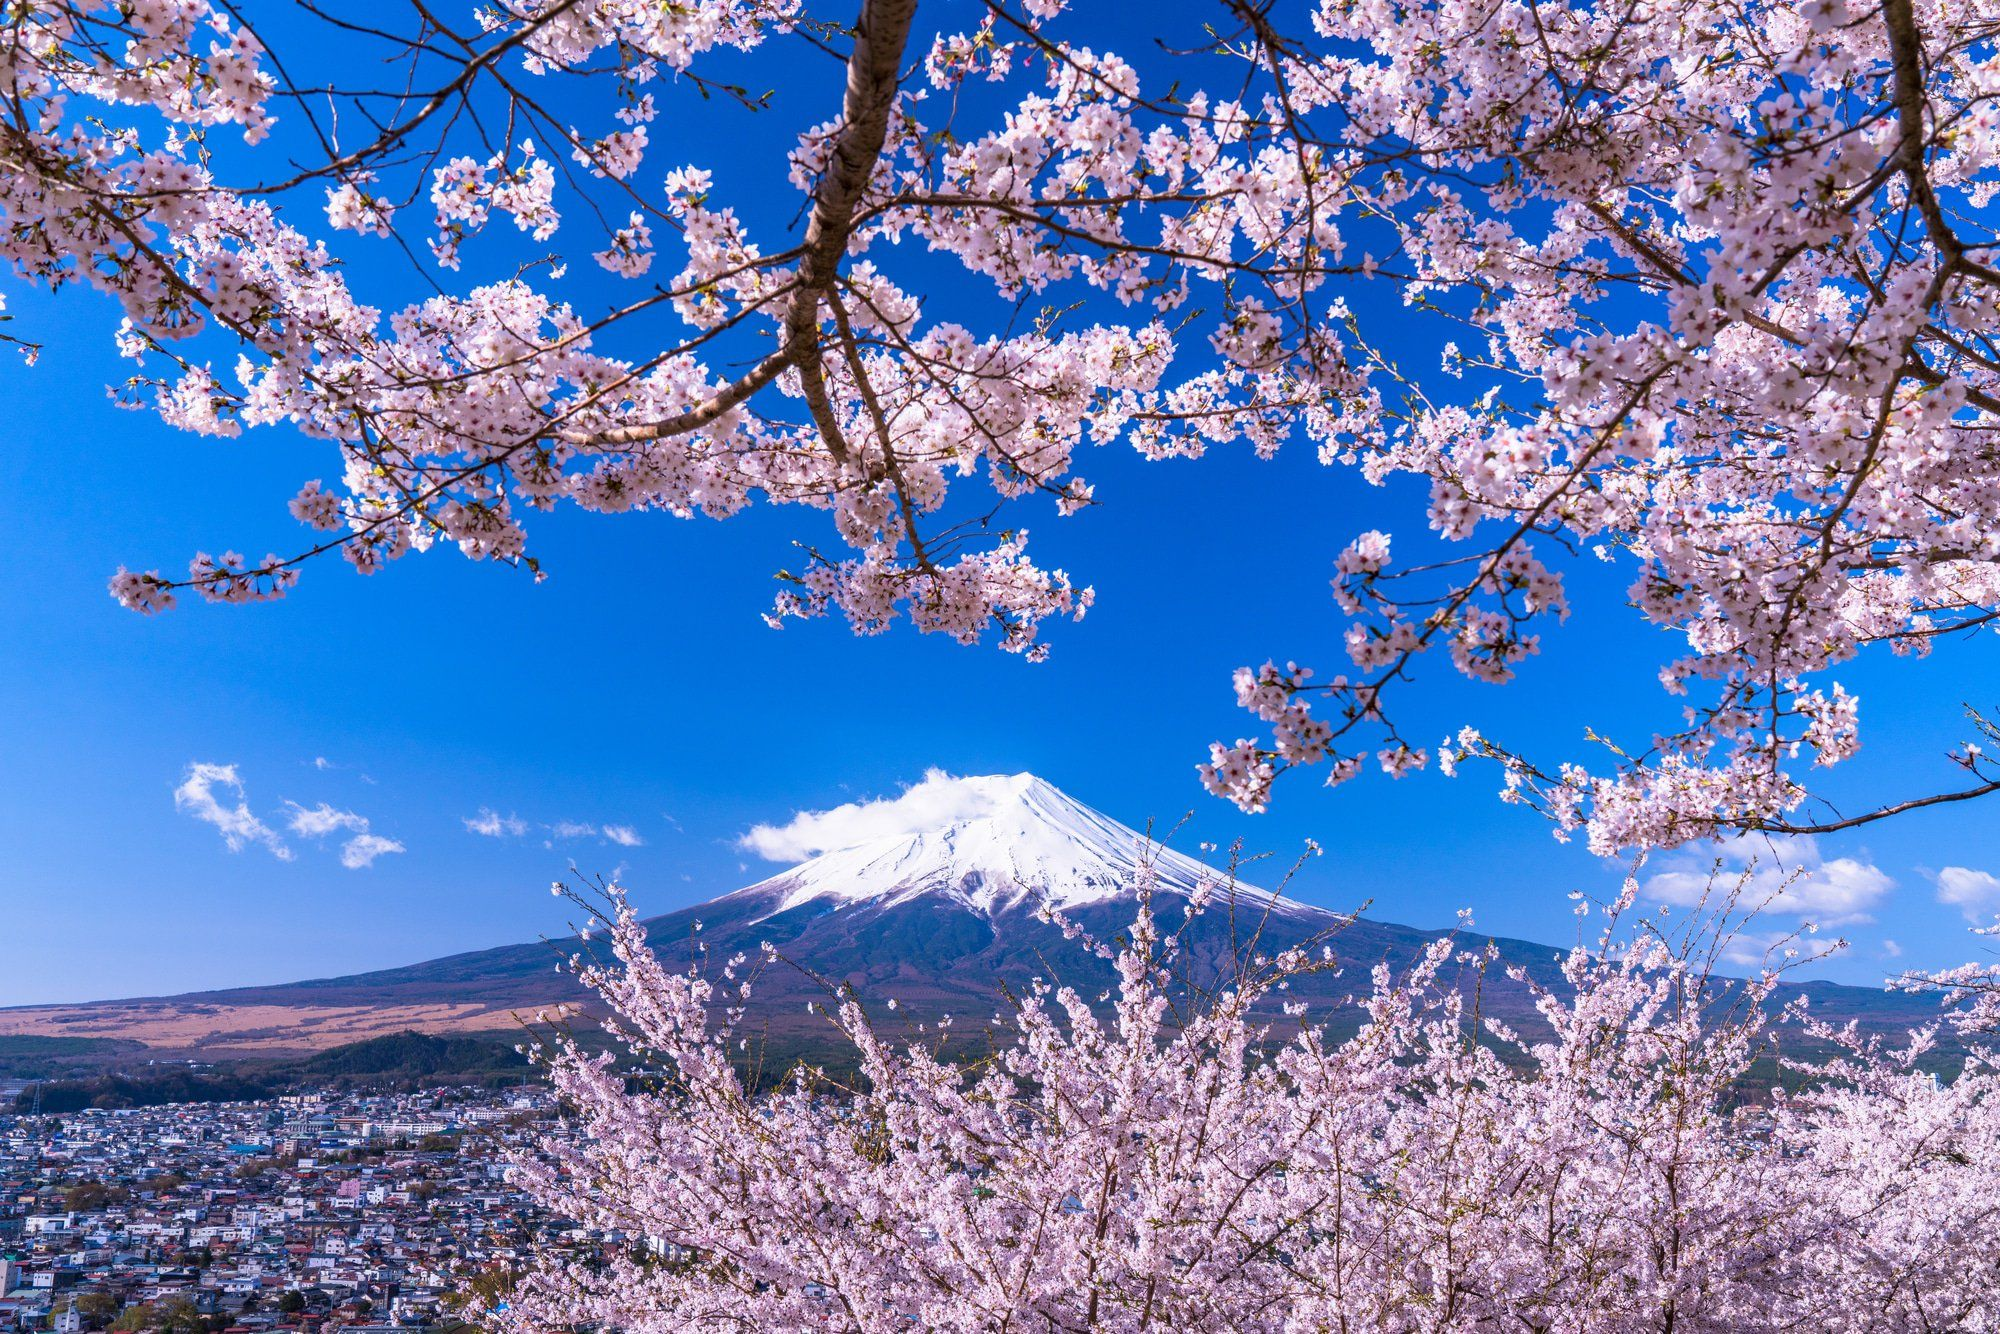 7 Great Cherry Blossom Spots Near Tokyo In 2020 Matcha Japan Travel Web Magazine There Are Countless Cherry Blosso Tokyo Cherry Japan Travel Ancient Cities